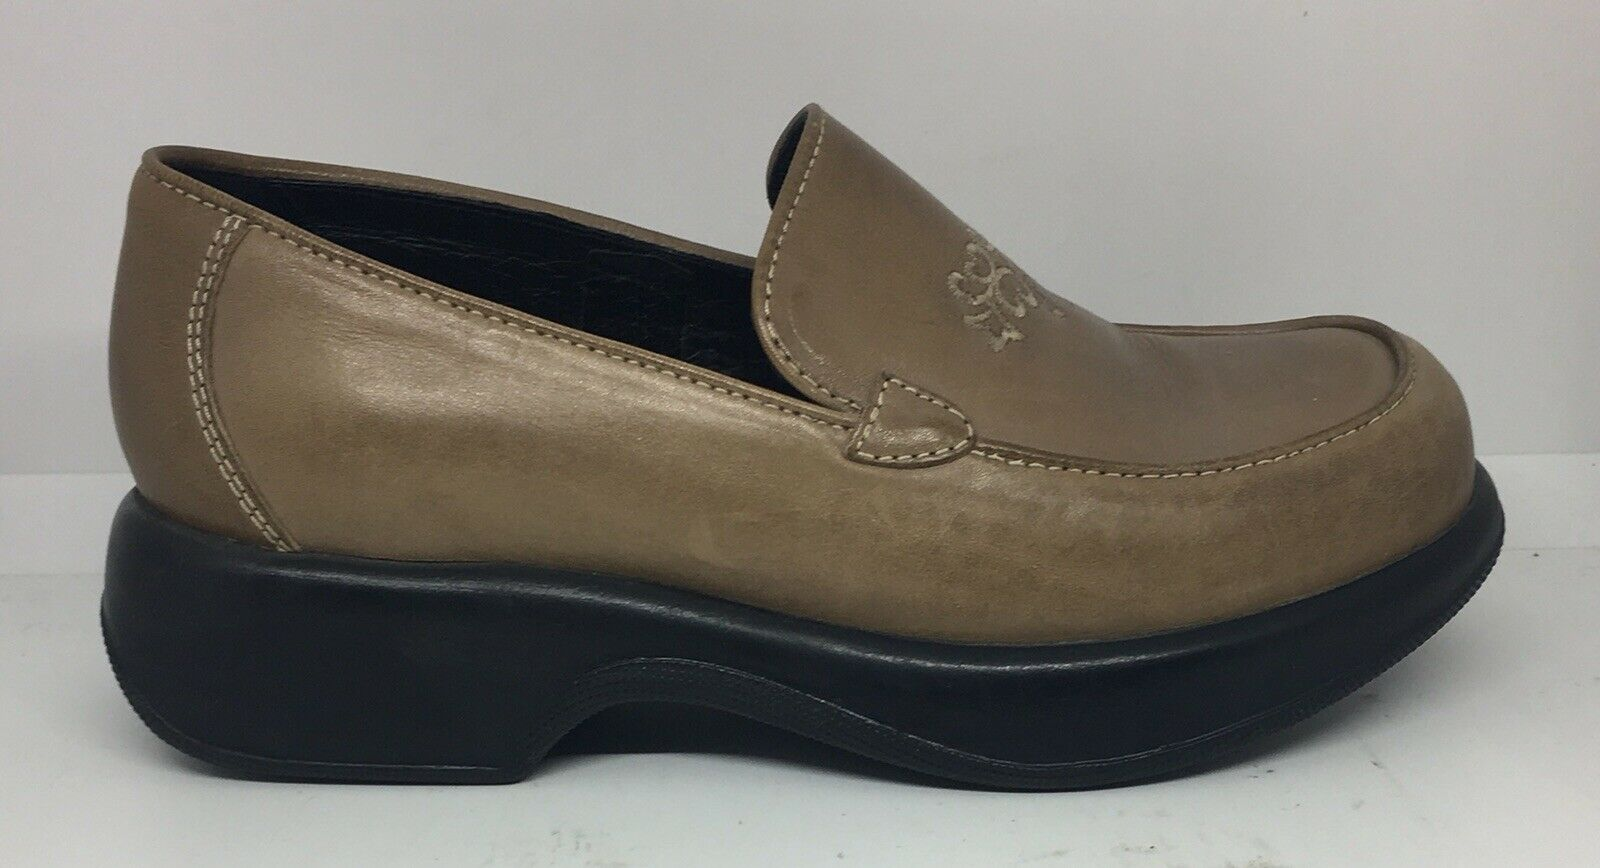 Dansko Women's Women's Women's Size 39 US 8.5-9 Beige Embroidered Leather Comfort Clog shoes 58b07a